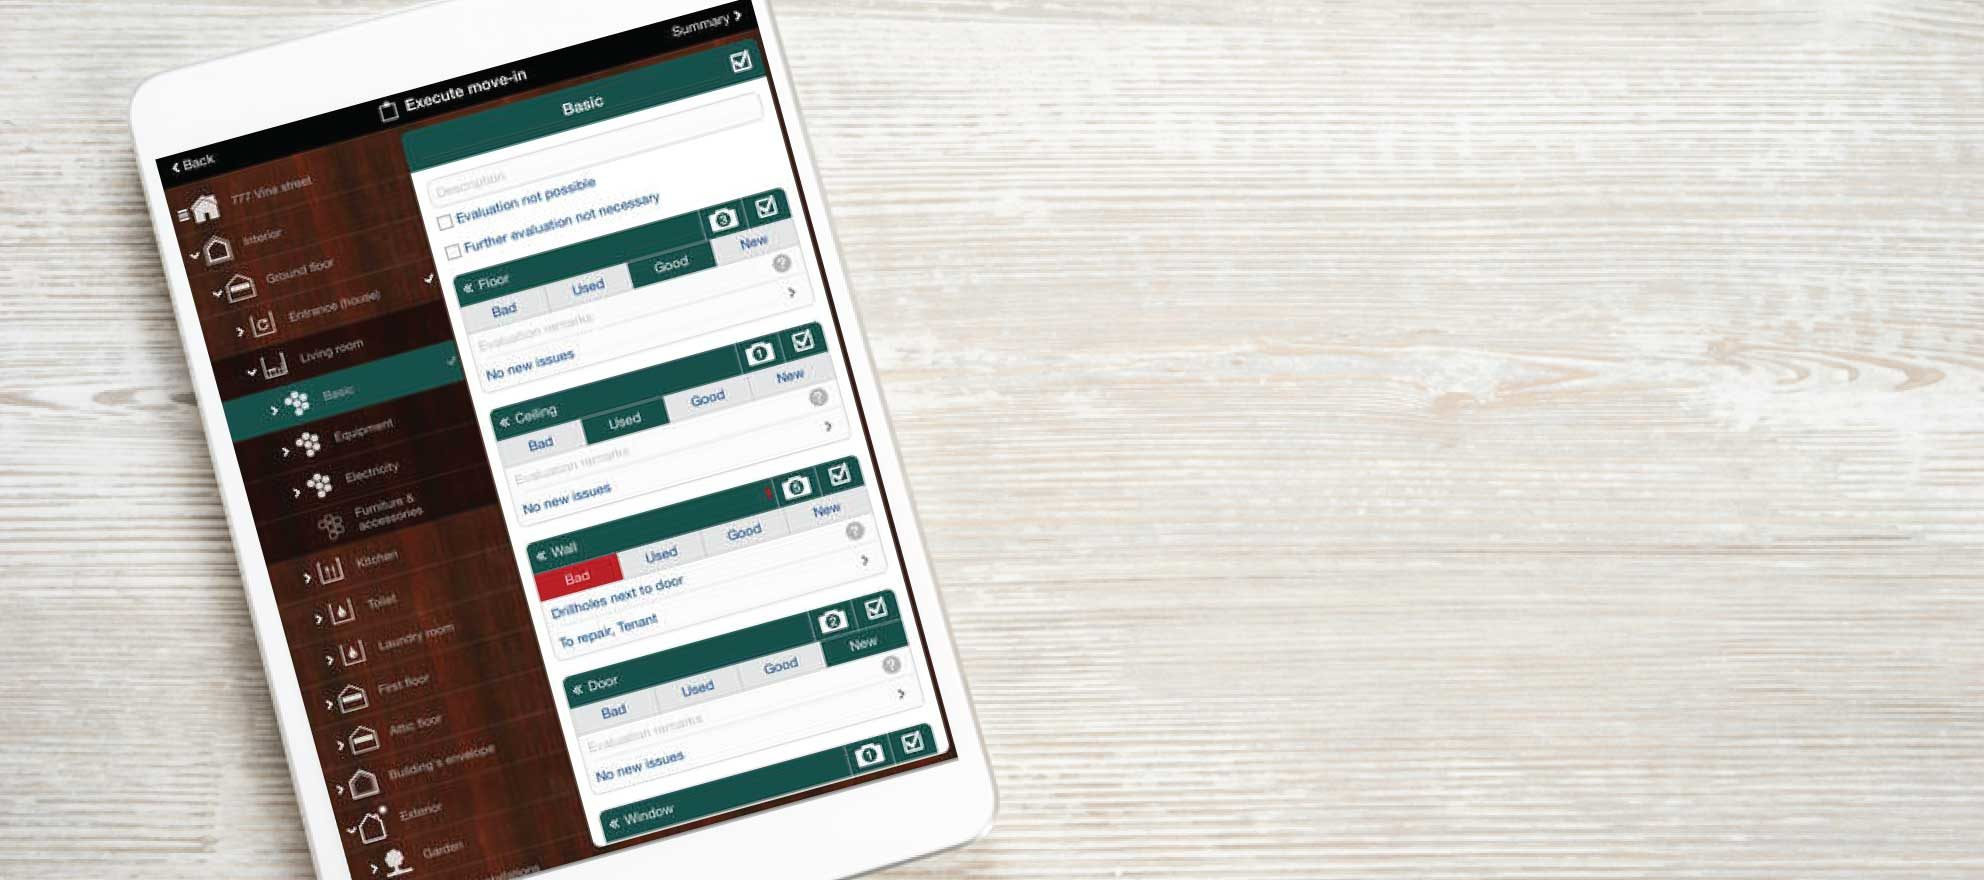 Rental inspection app offers walk-through checklists, reports